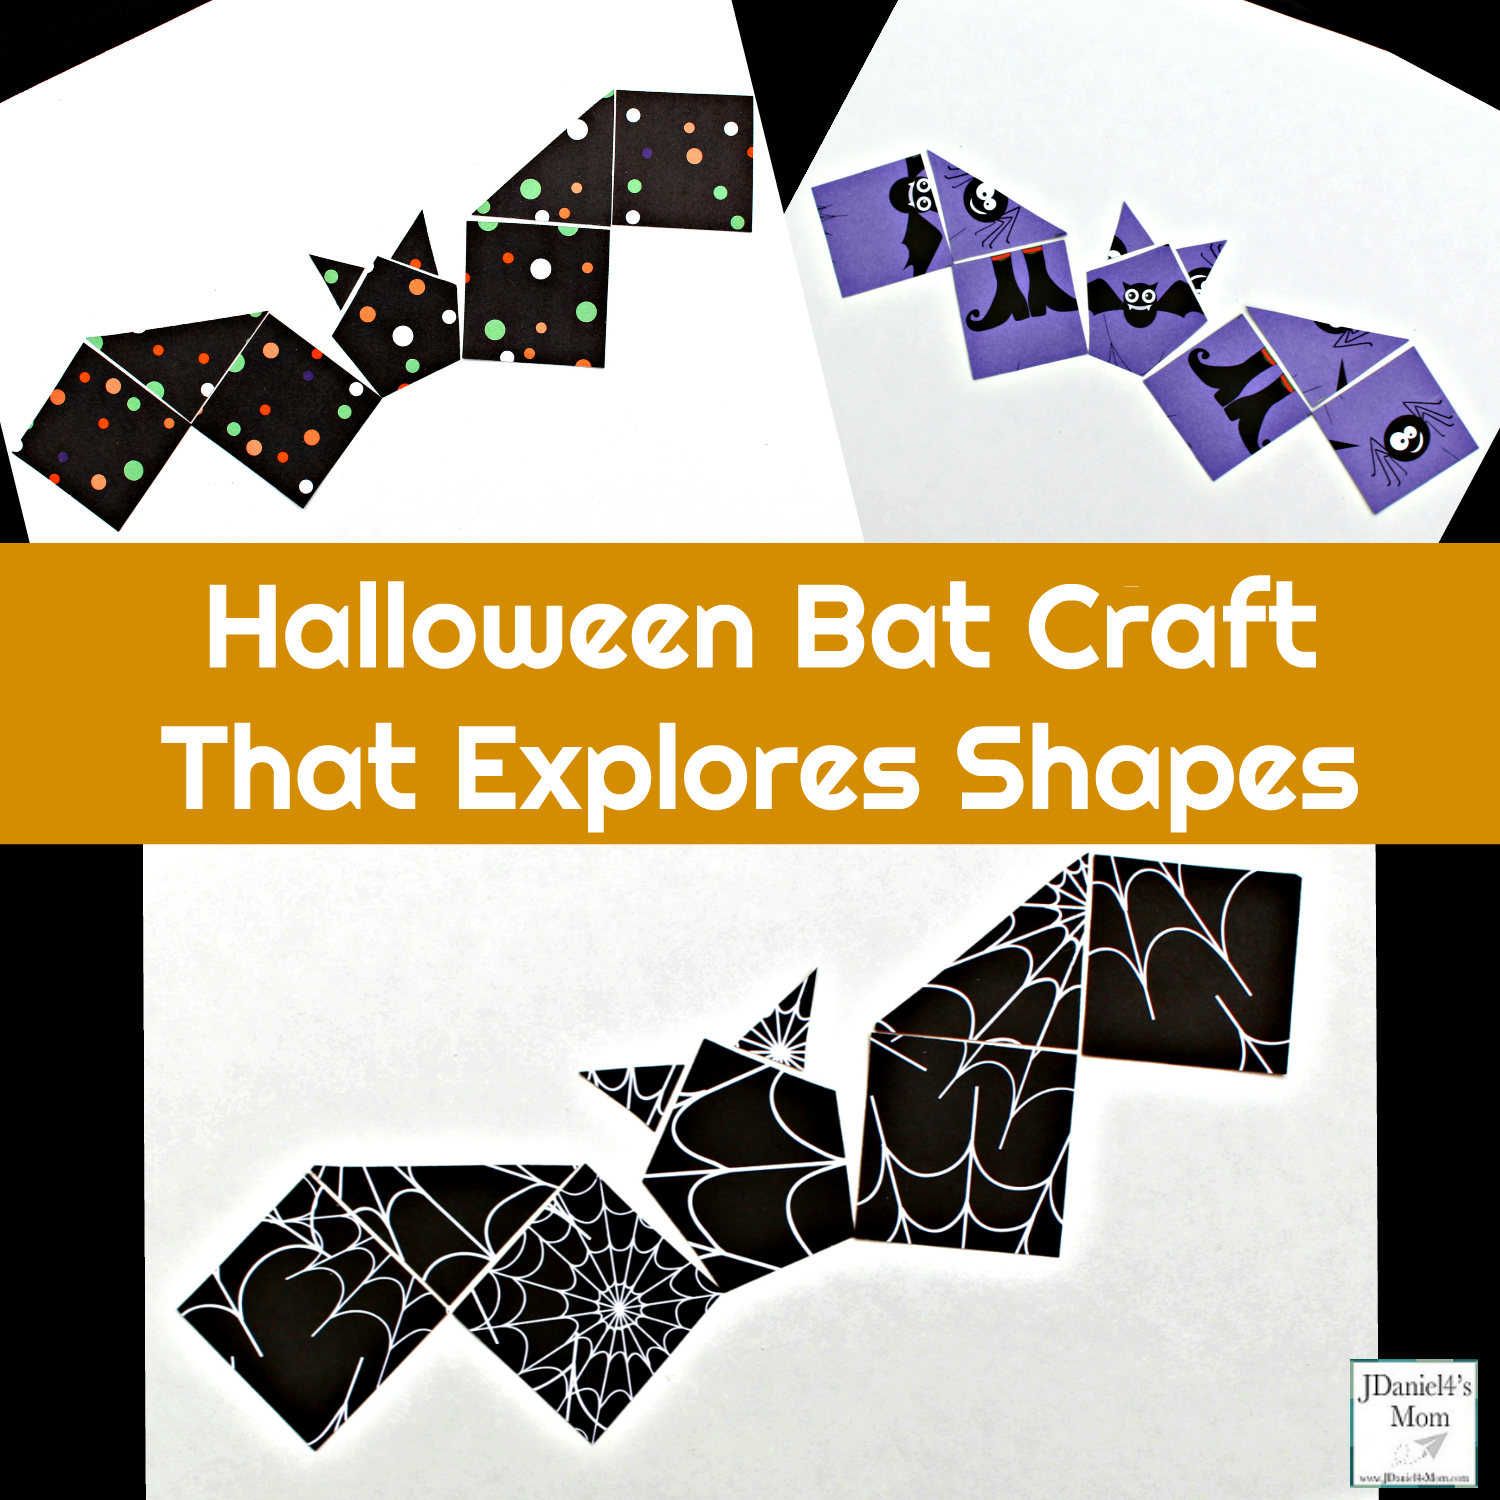 Halloween Bat Craft - Your children at home or students at school will have enjoy putting together this Stellaluna themed craft.